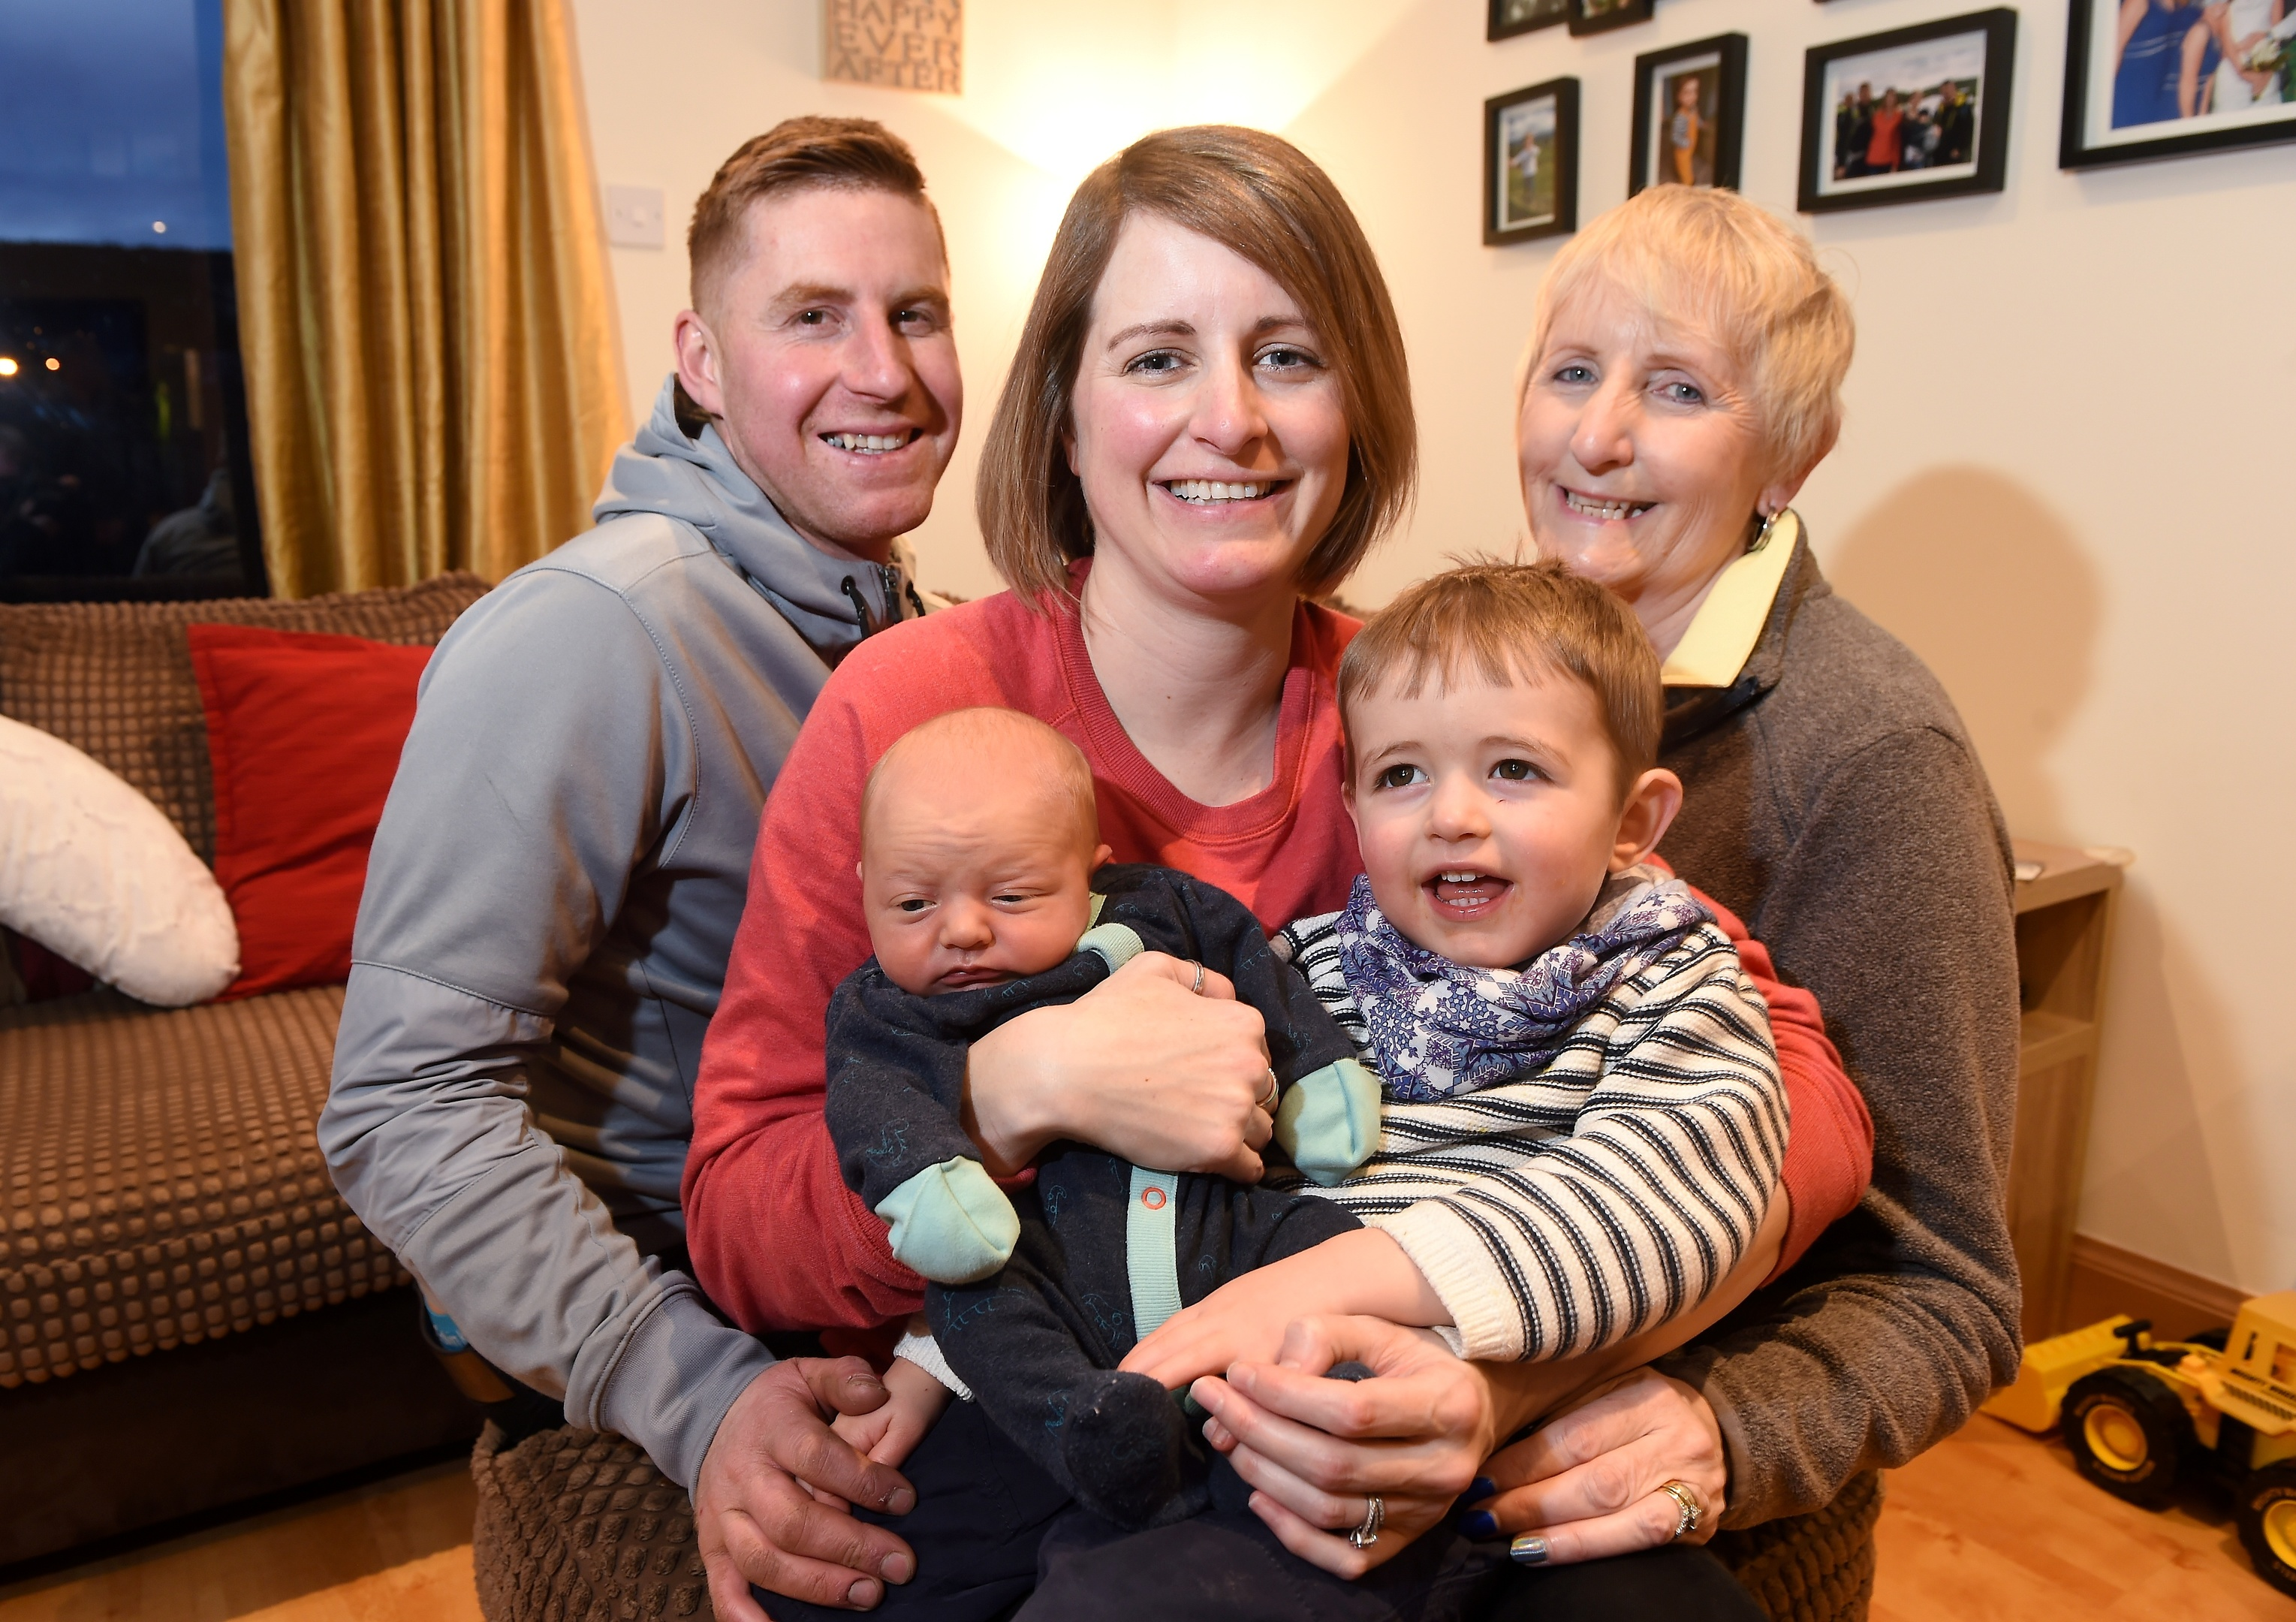 Baby Kier Ross of Aviemore who was born last Friday morning in a layby off the A9 photographed with dad Darren, mum Laura, big brother Roan (2) and granny, Maureen Chisholm who acted as midwife. Picture by Sandy McCook.